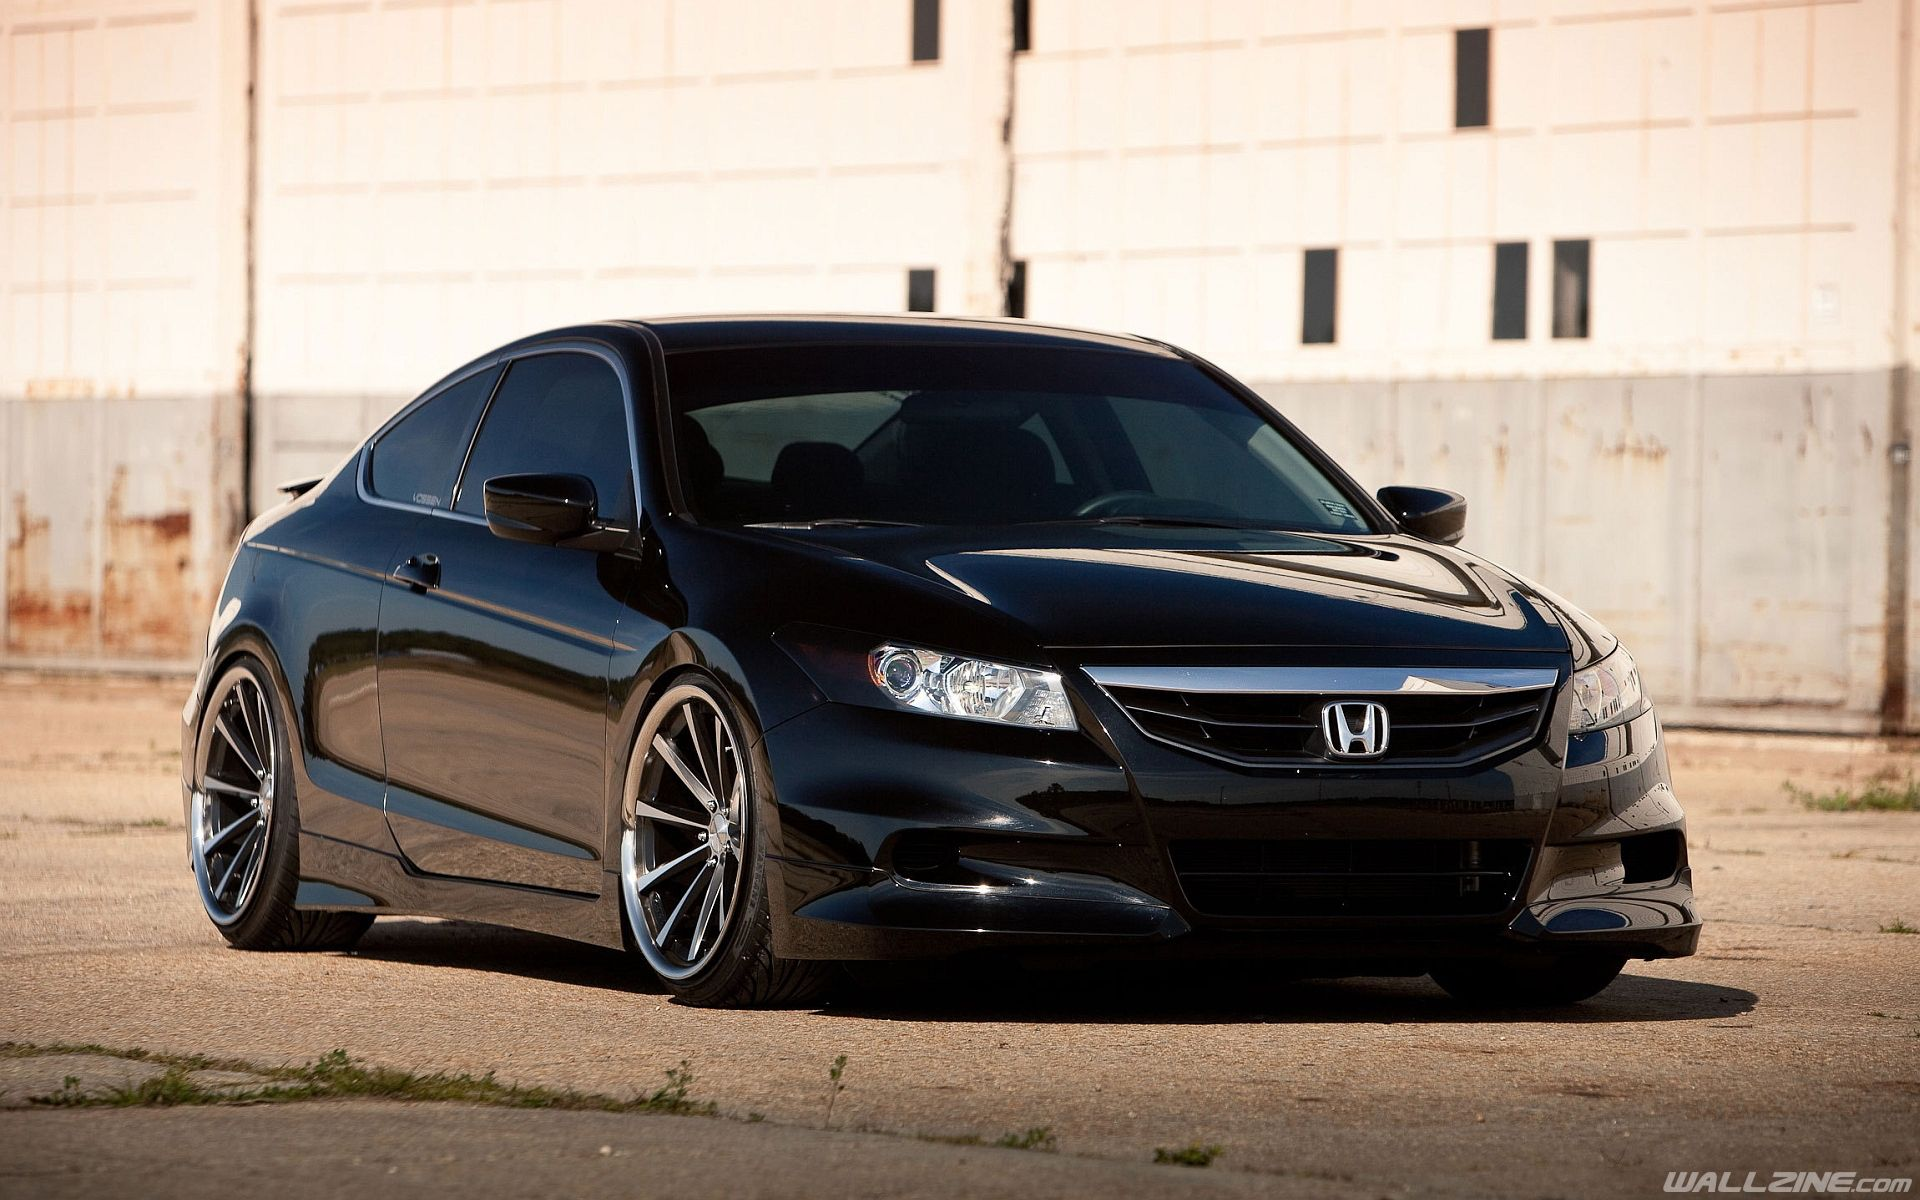 Modified Honda Accord Wallpaper